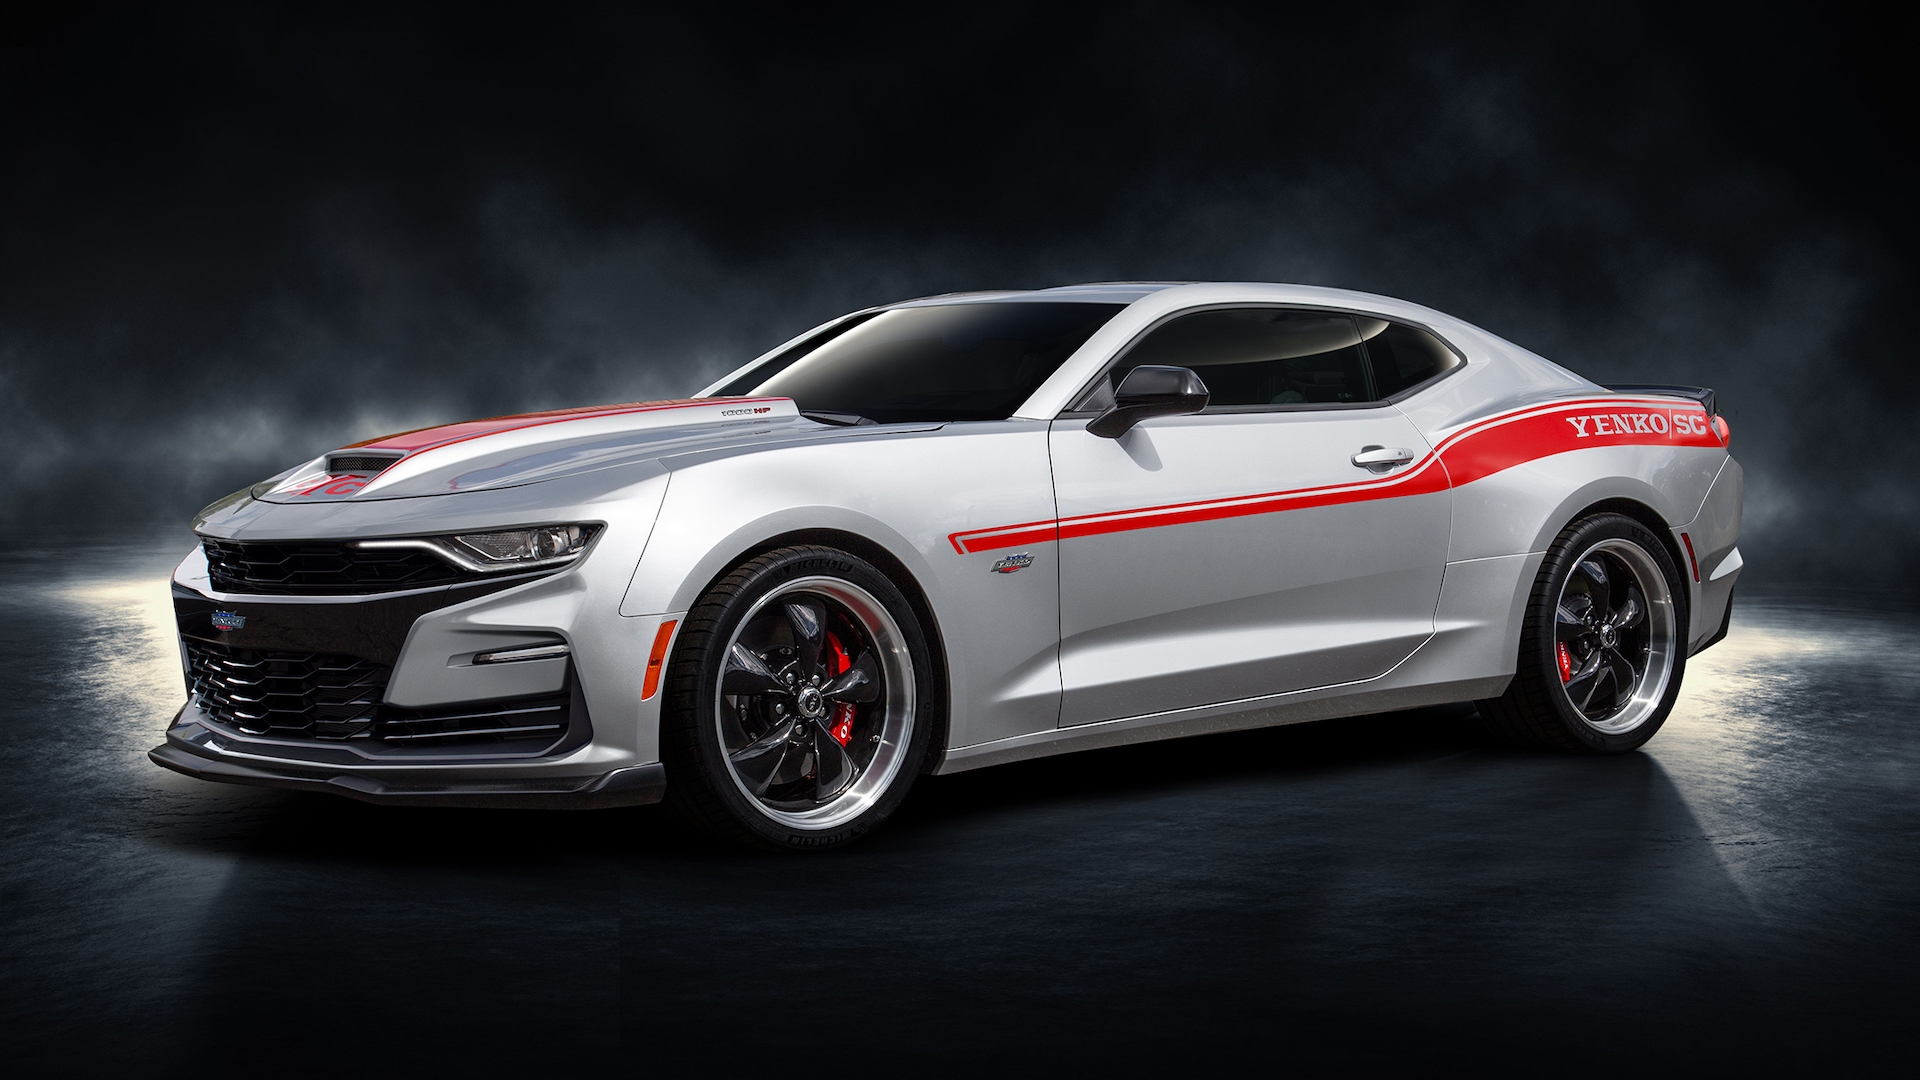 98 The Best 2019 Chevy Camaro Review and Release date